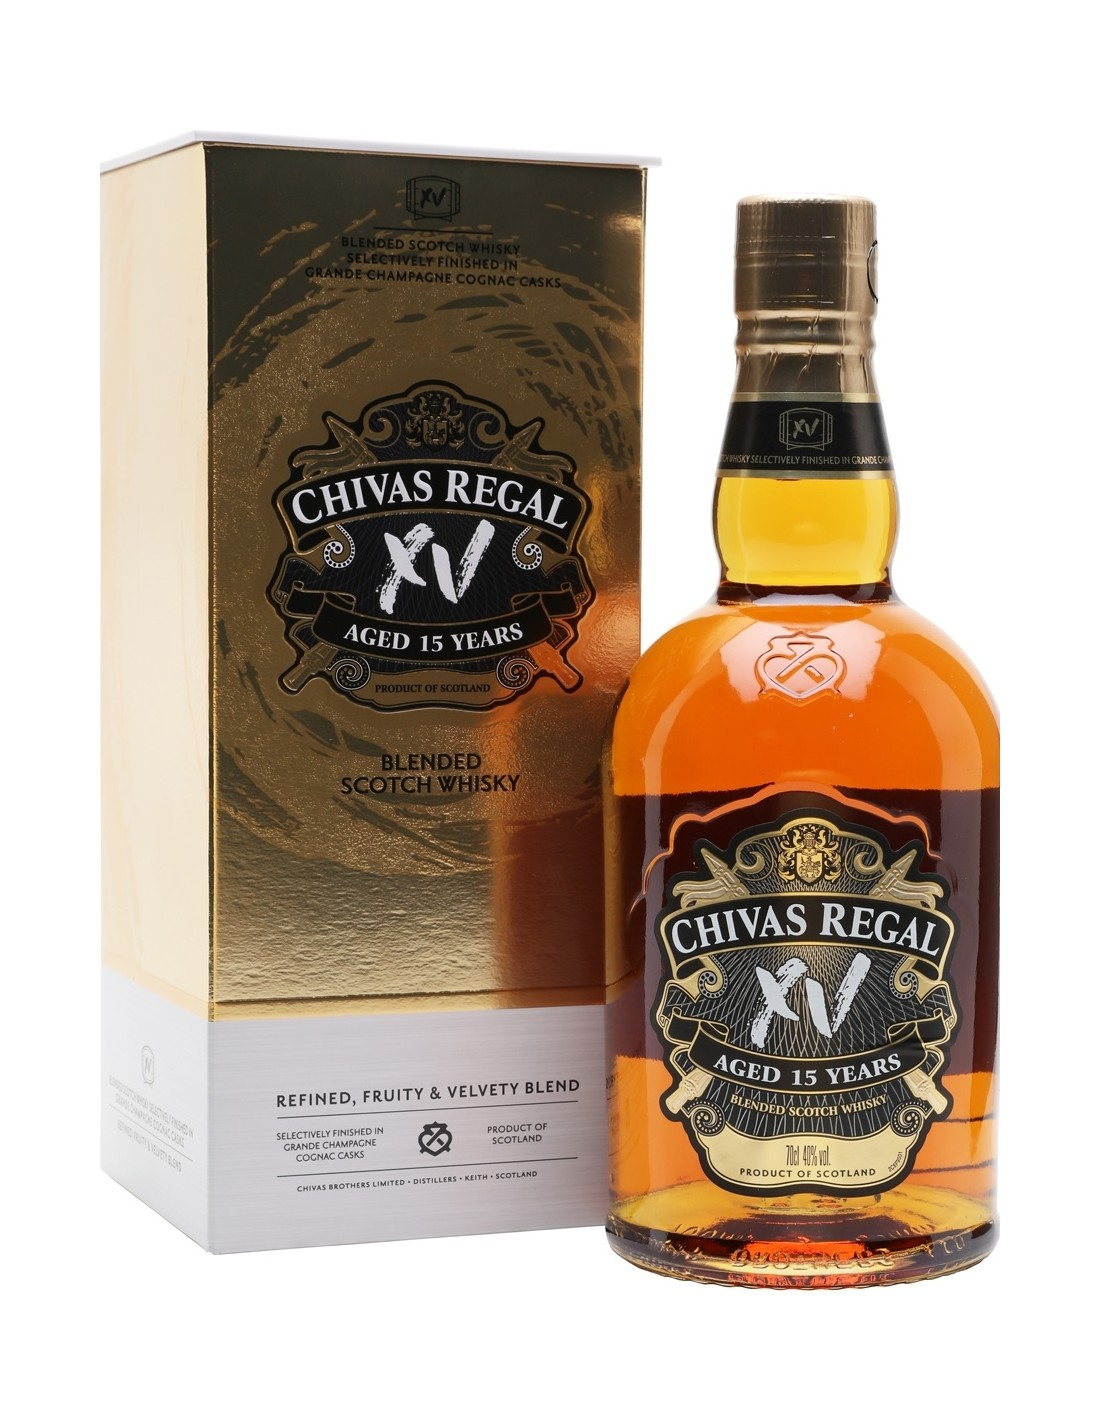 Whisky Chivas Regal, 15 ani, 40% alc., 0.7L, Scotia